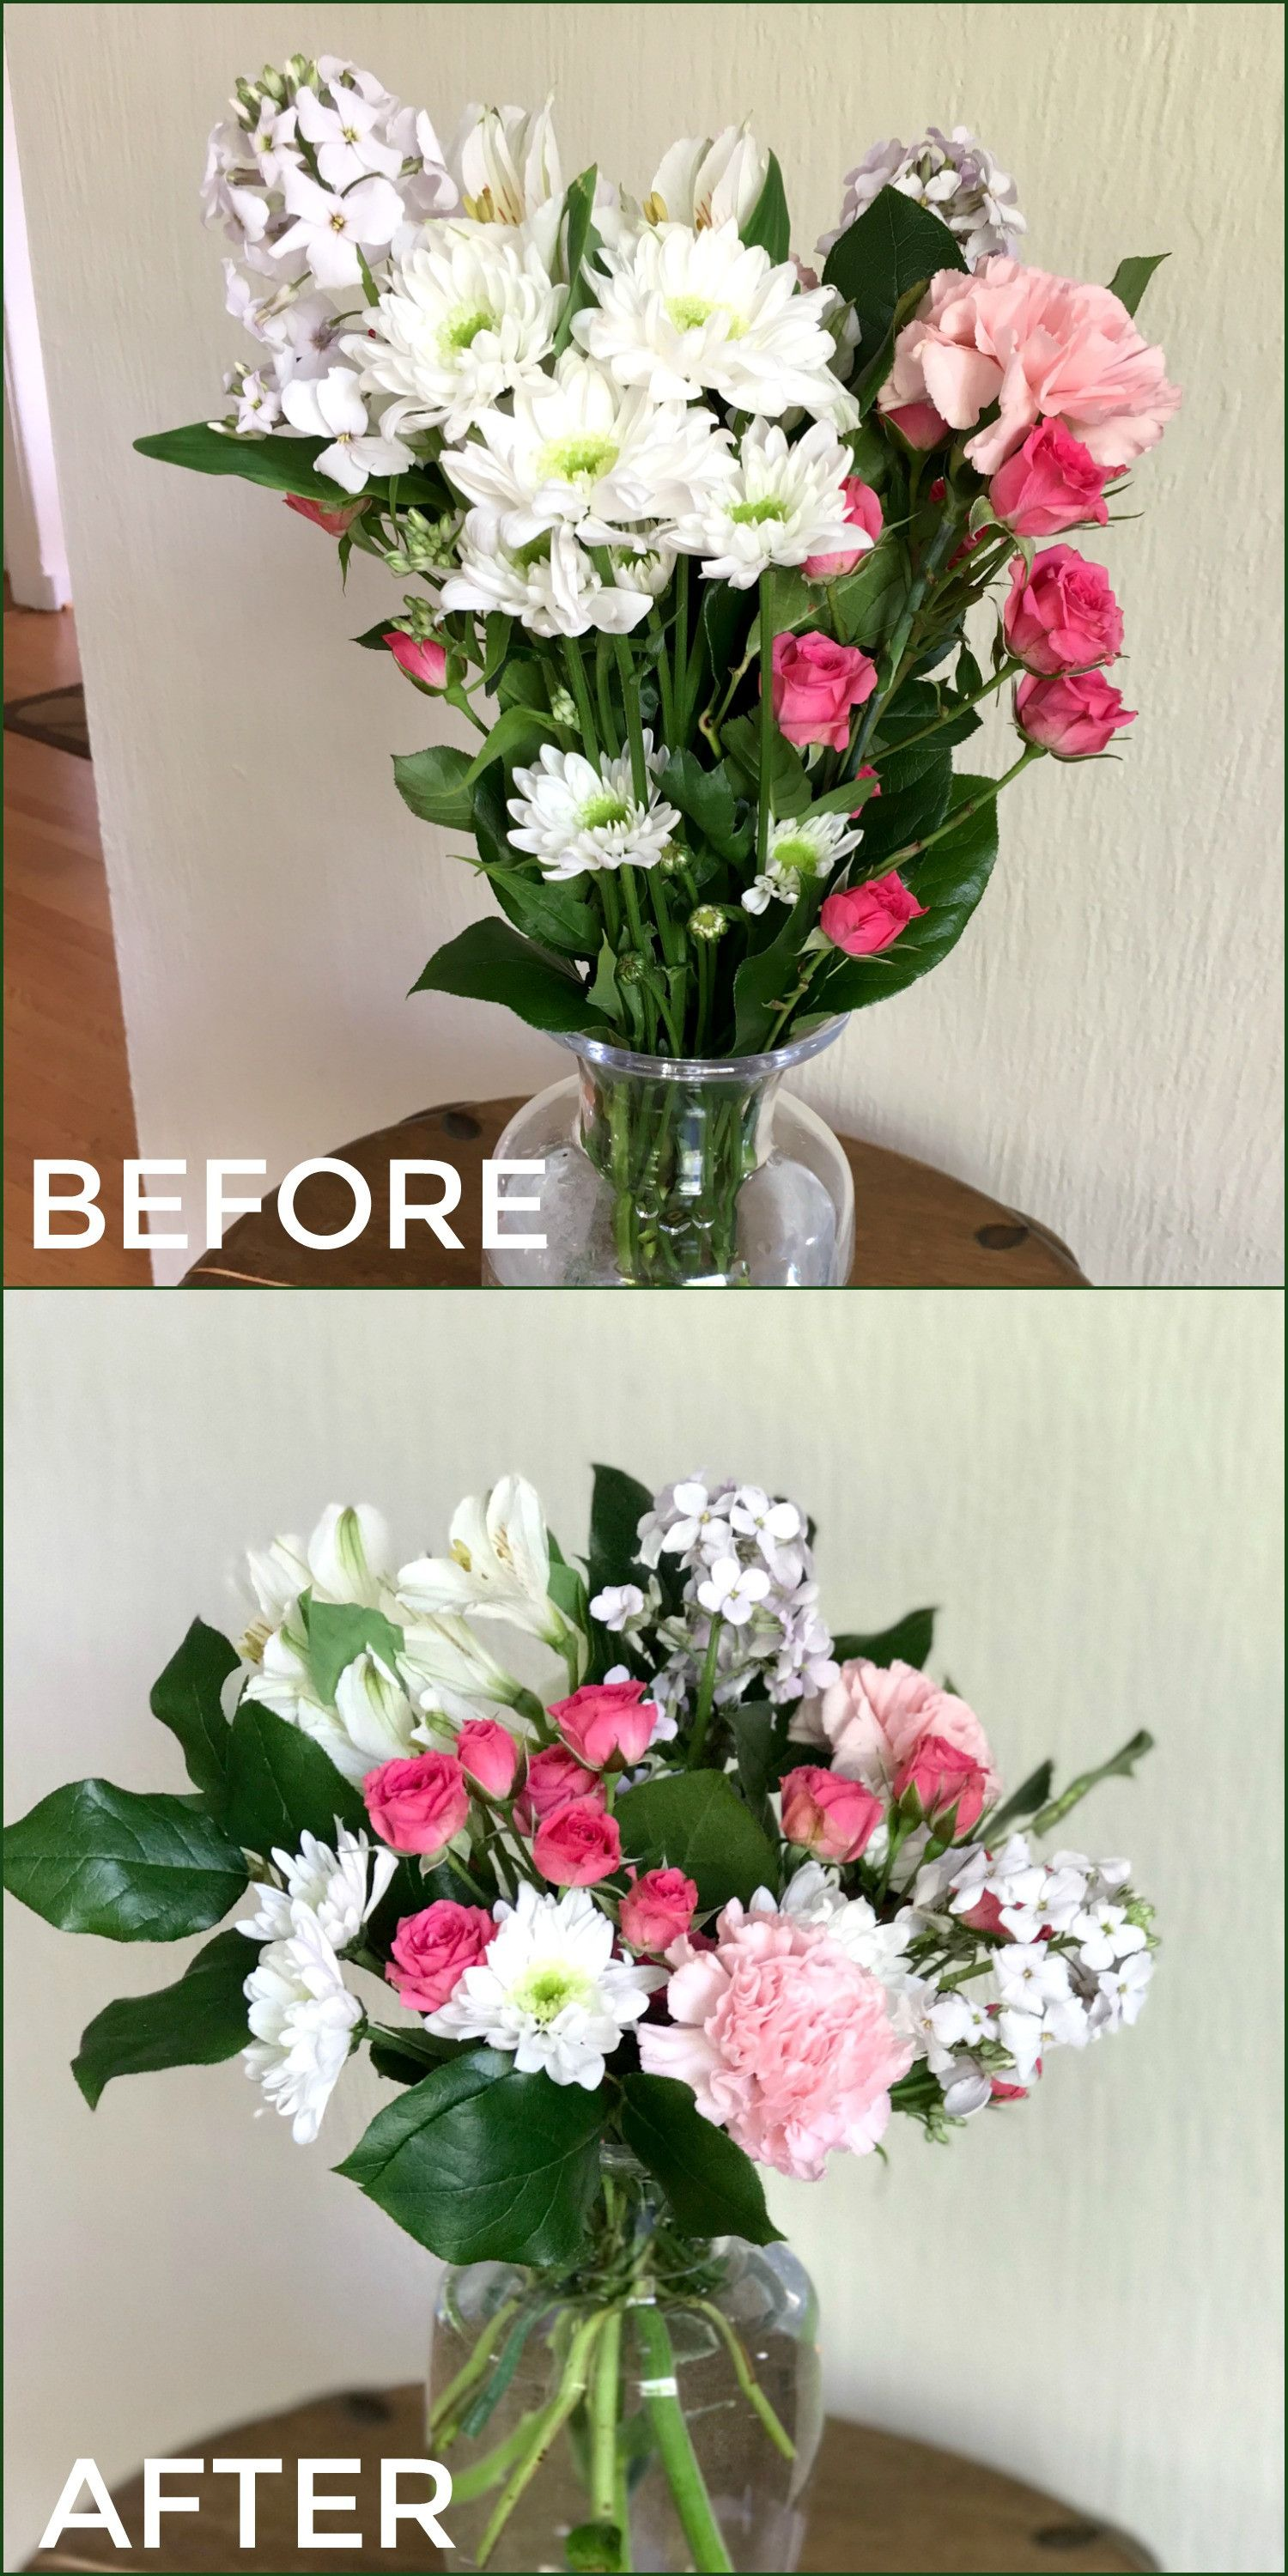 How To Transform a Grocery Store Bouquet into a Floral